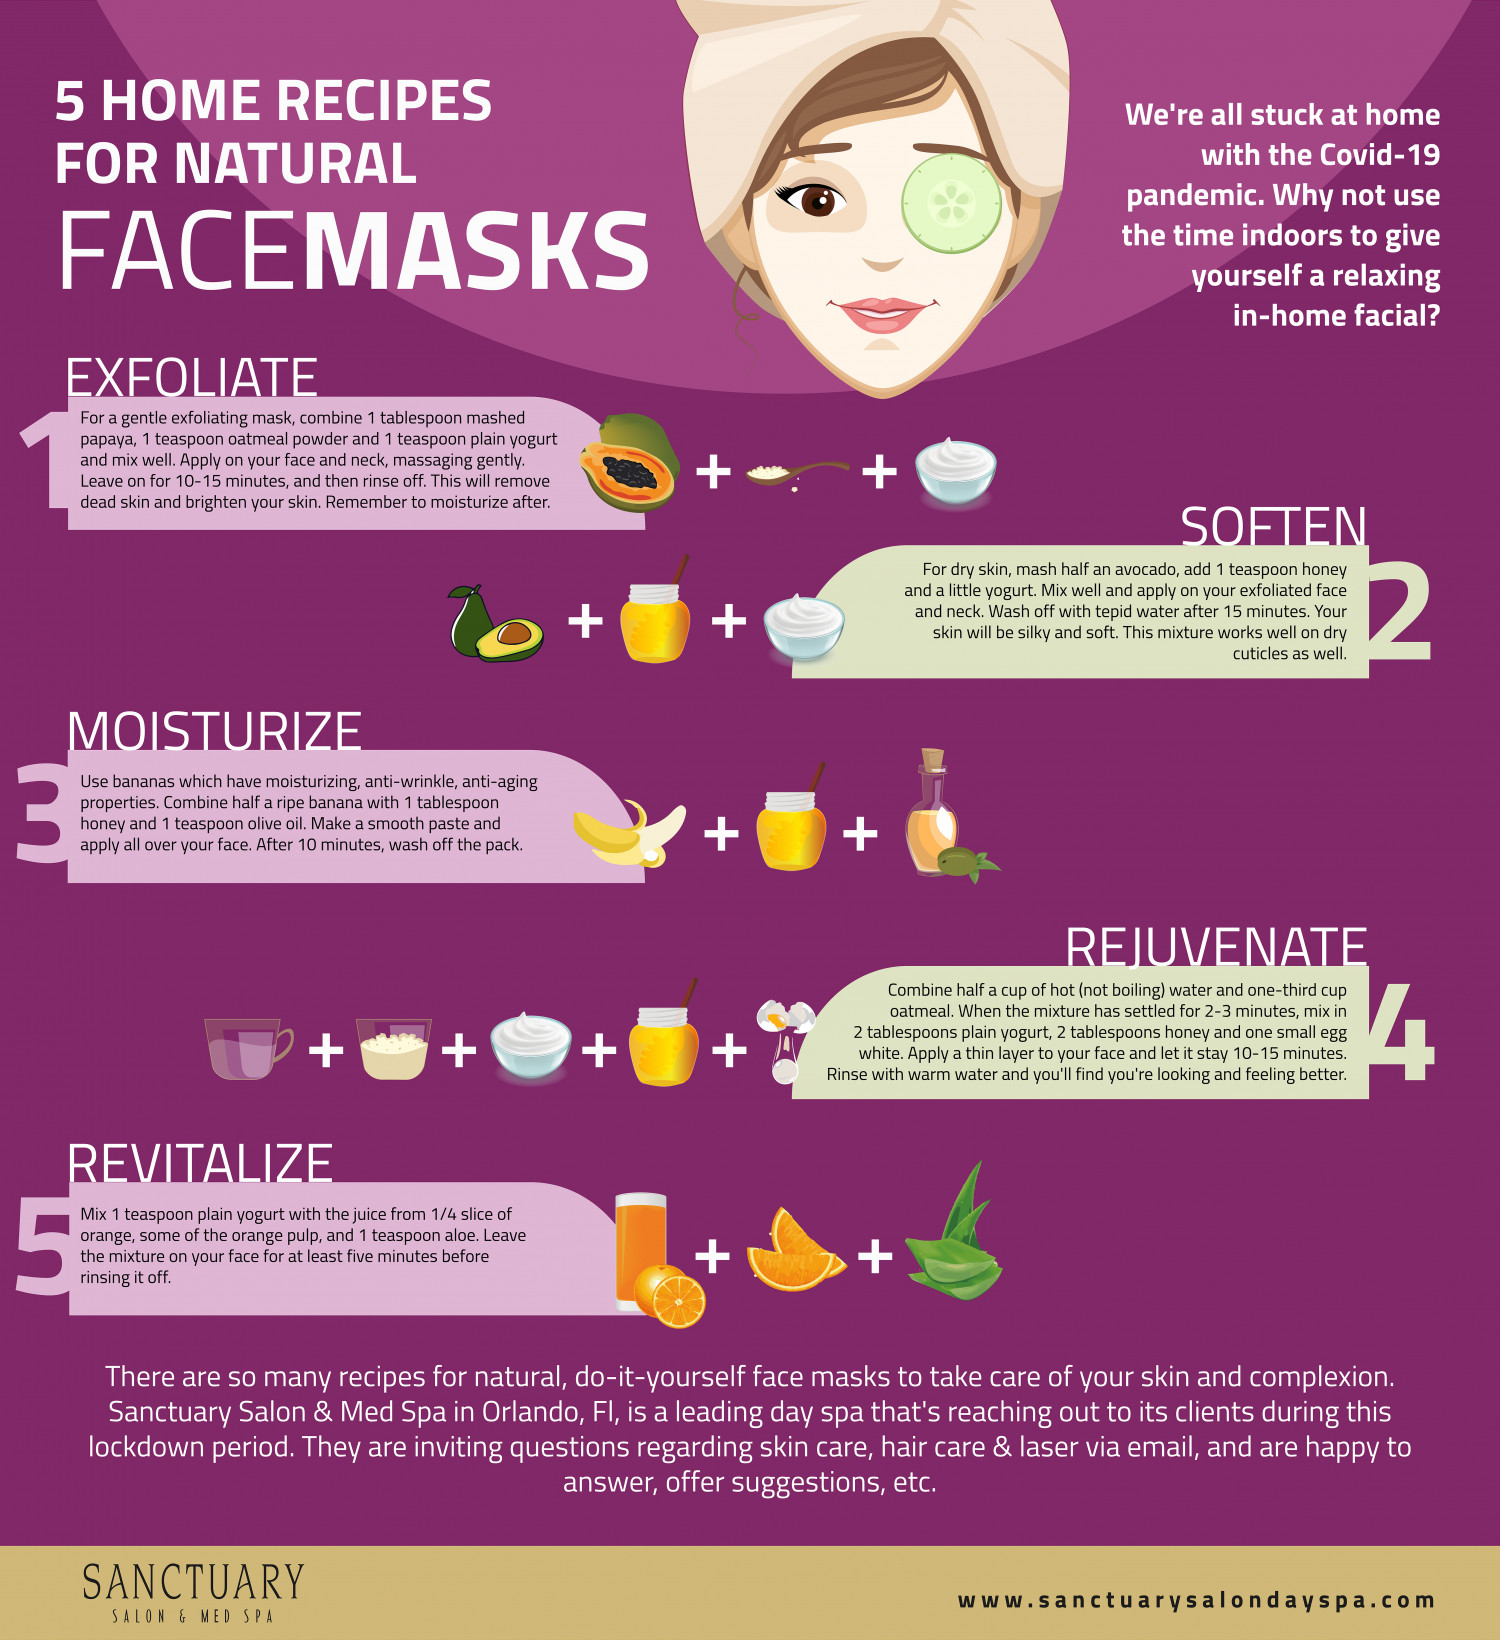 5 HOME RECIPES FOR NATURAL FACE MASKS Infographic